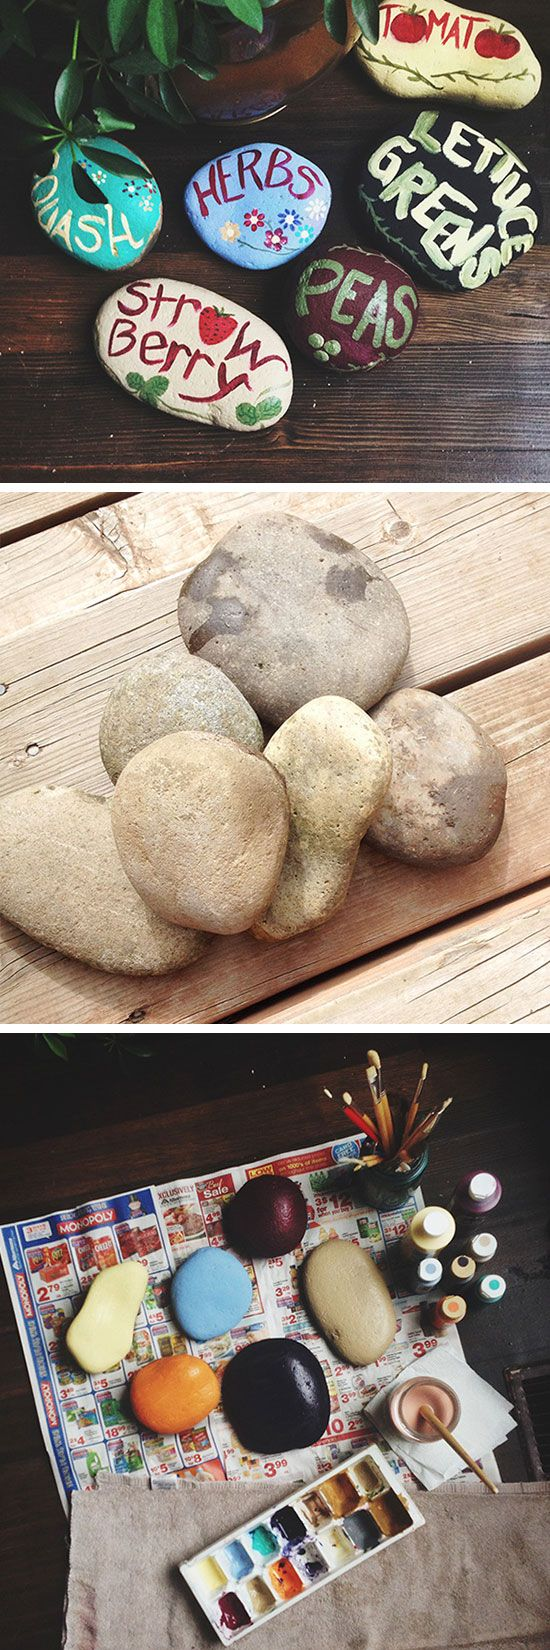 A great summertime project for my son. Collect rocks from the river then paint how he wants!